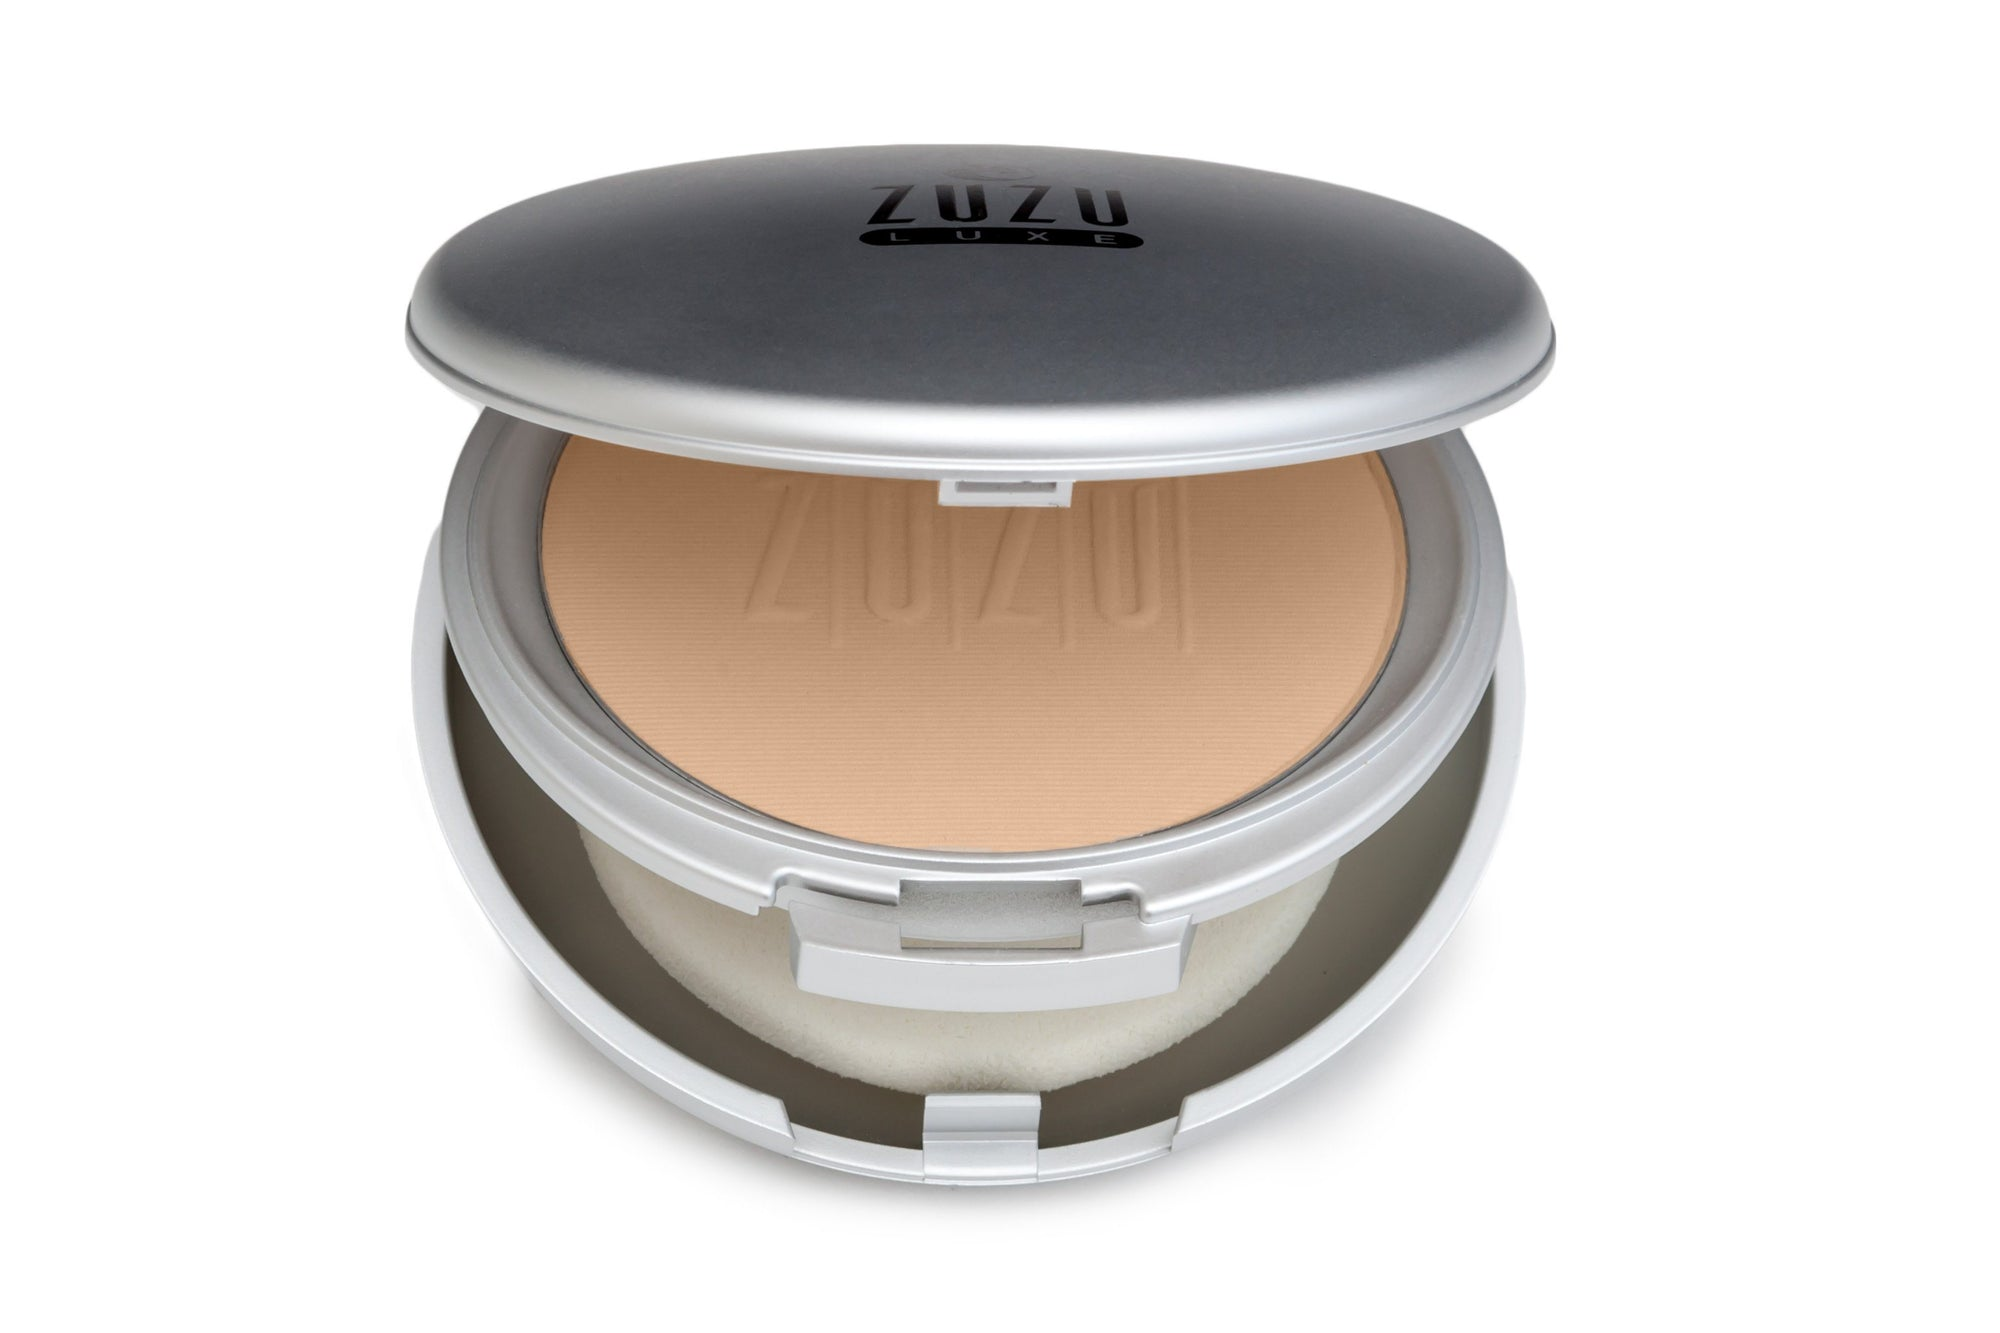 Beauty & Skin Care - Zuzu Luxe - Dual Powder Foundation, D-10